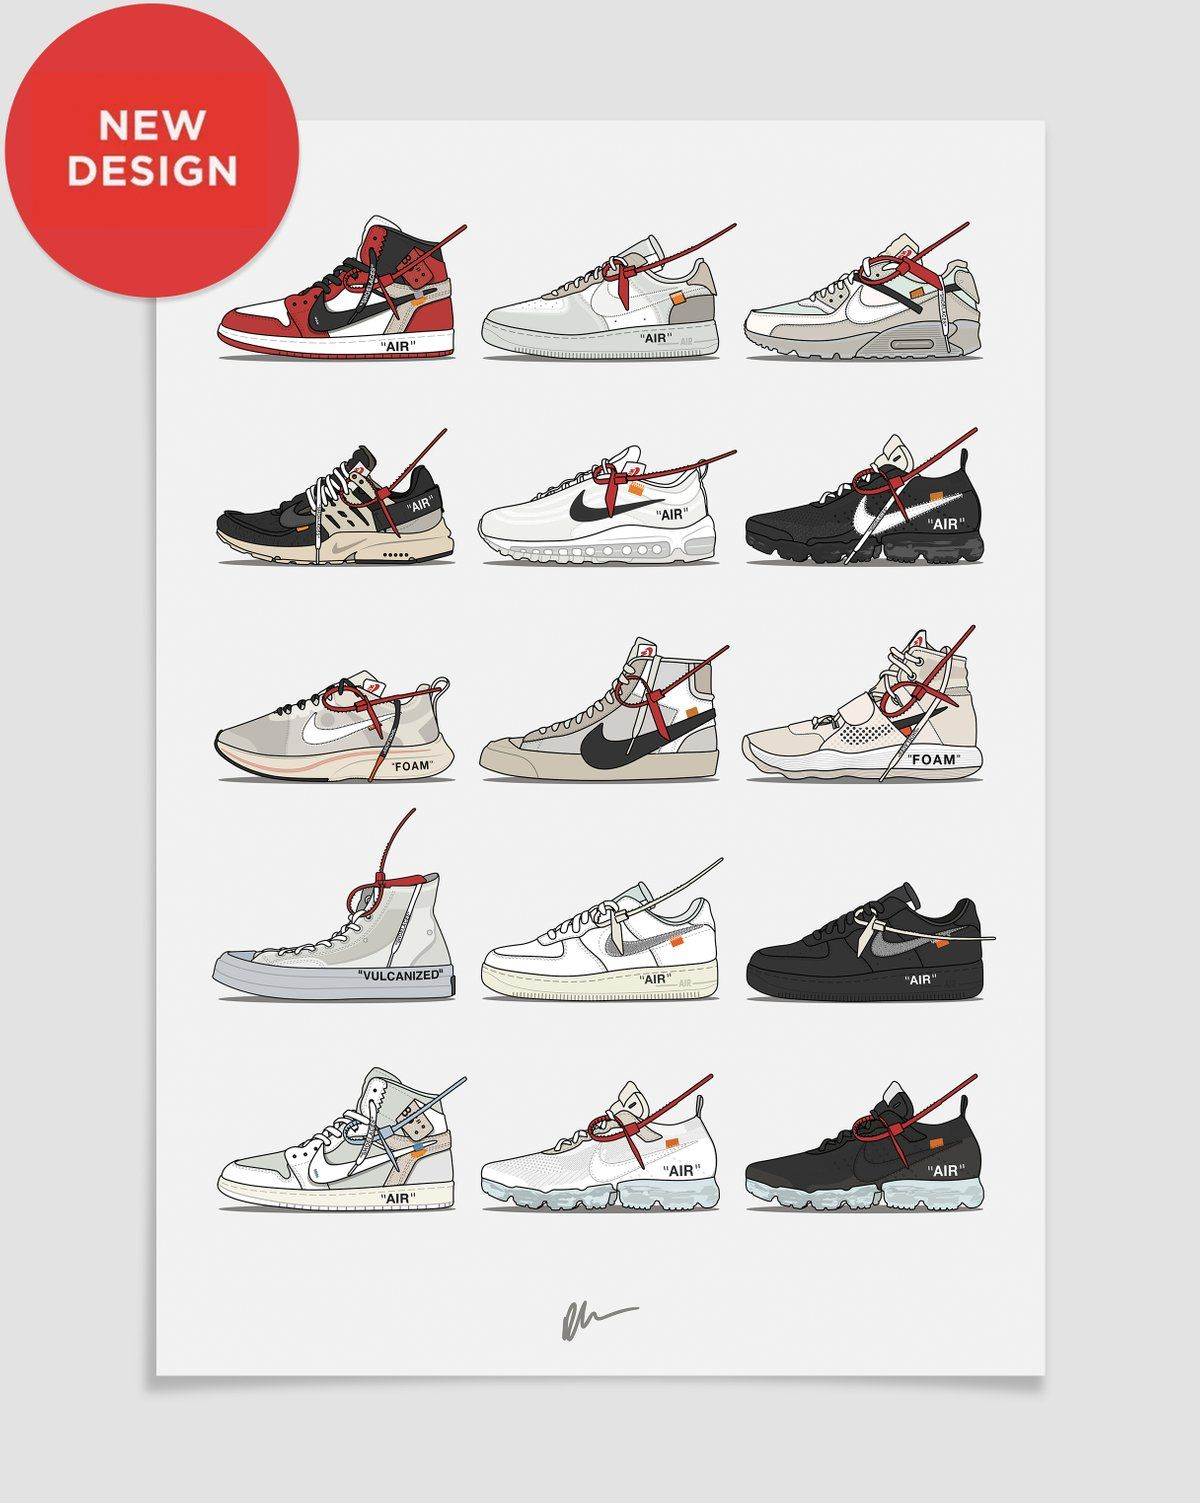 Free Download Image Of New Nike X Off White Collection Cool Rooms